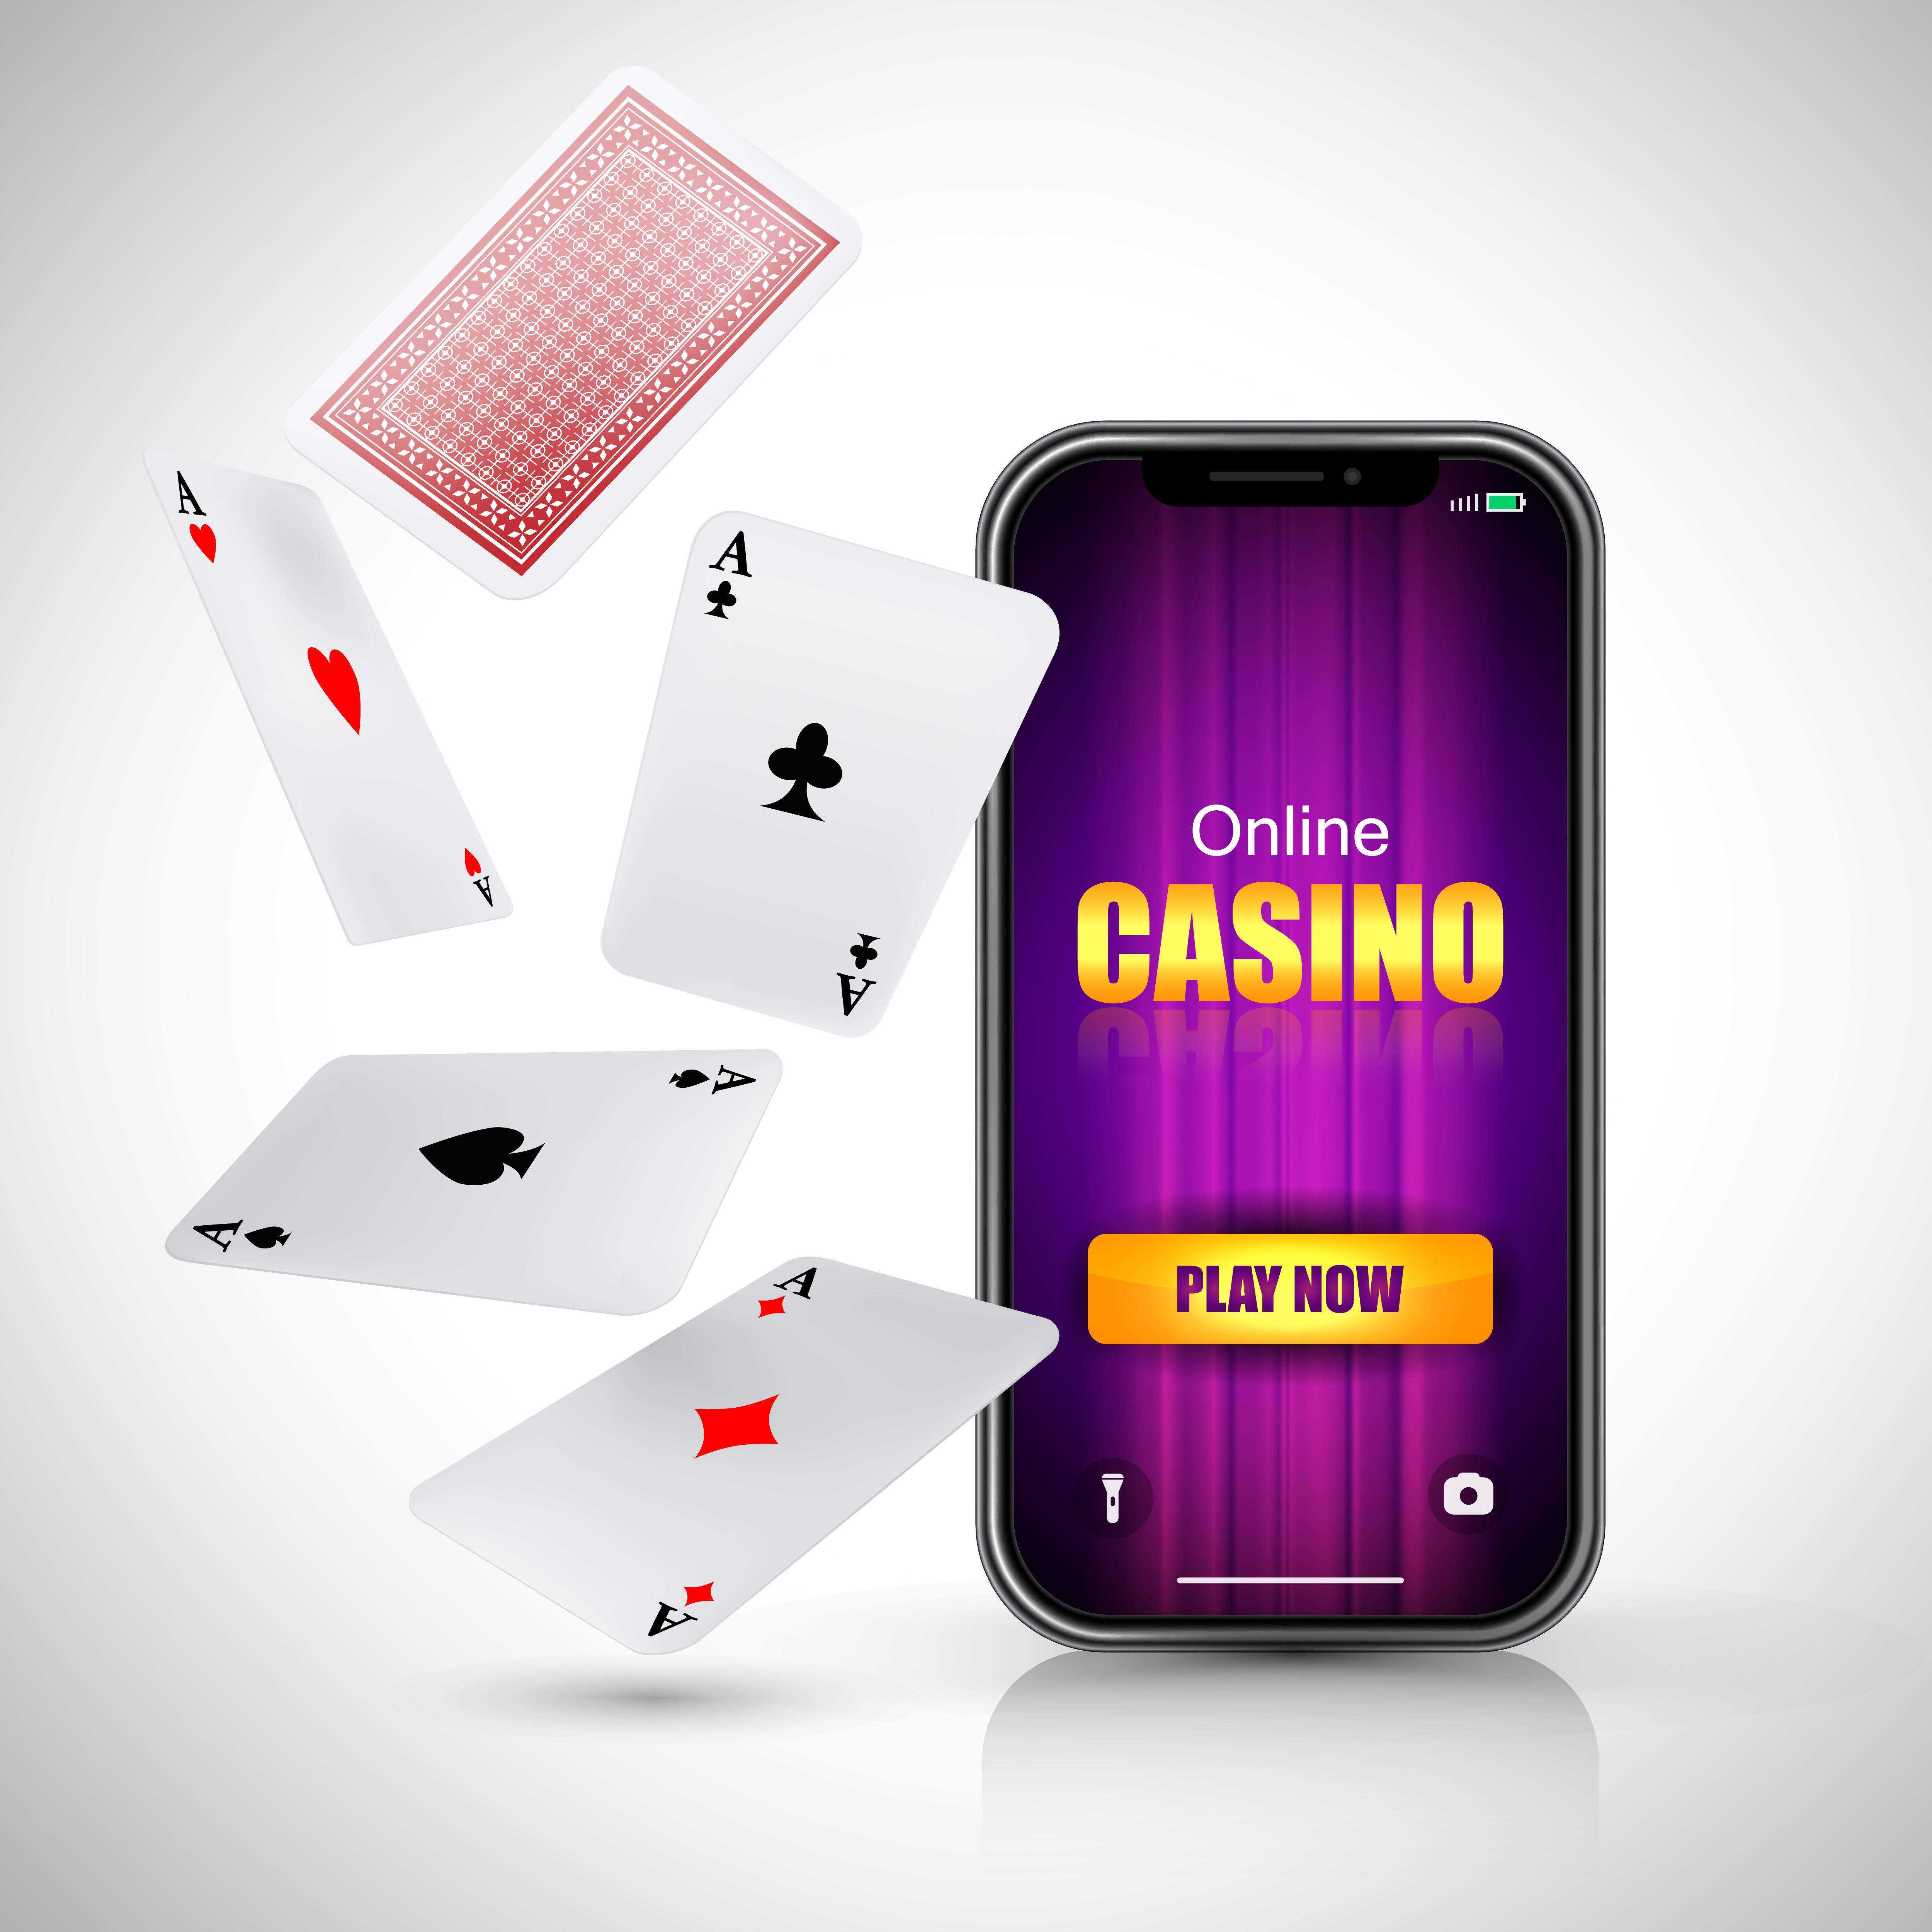 Online casino play now lettering on smart phone screen and flying aces on white background. Casino business advertising design. For posters, banners, leaflets and brochures.